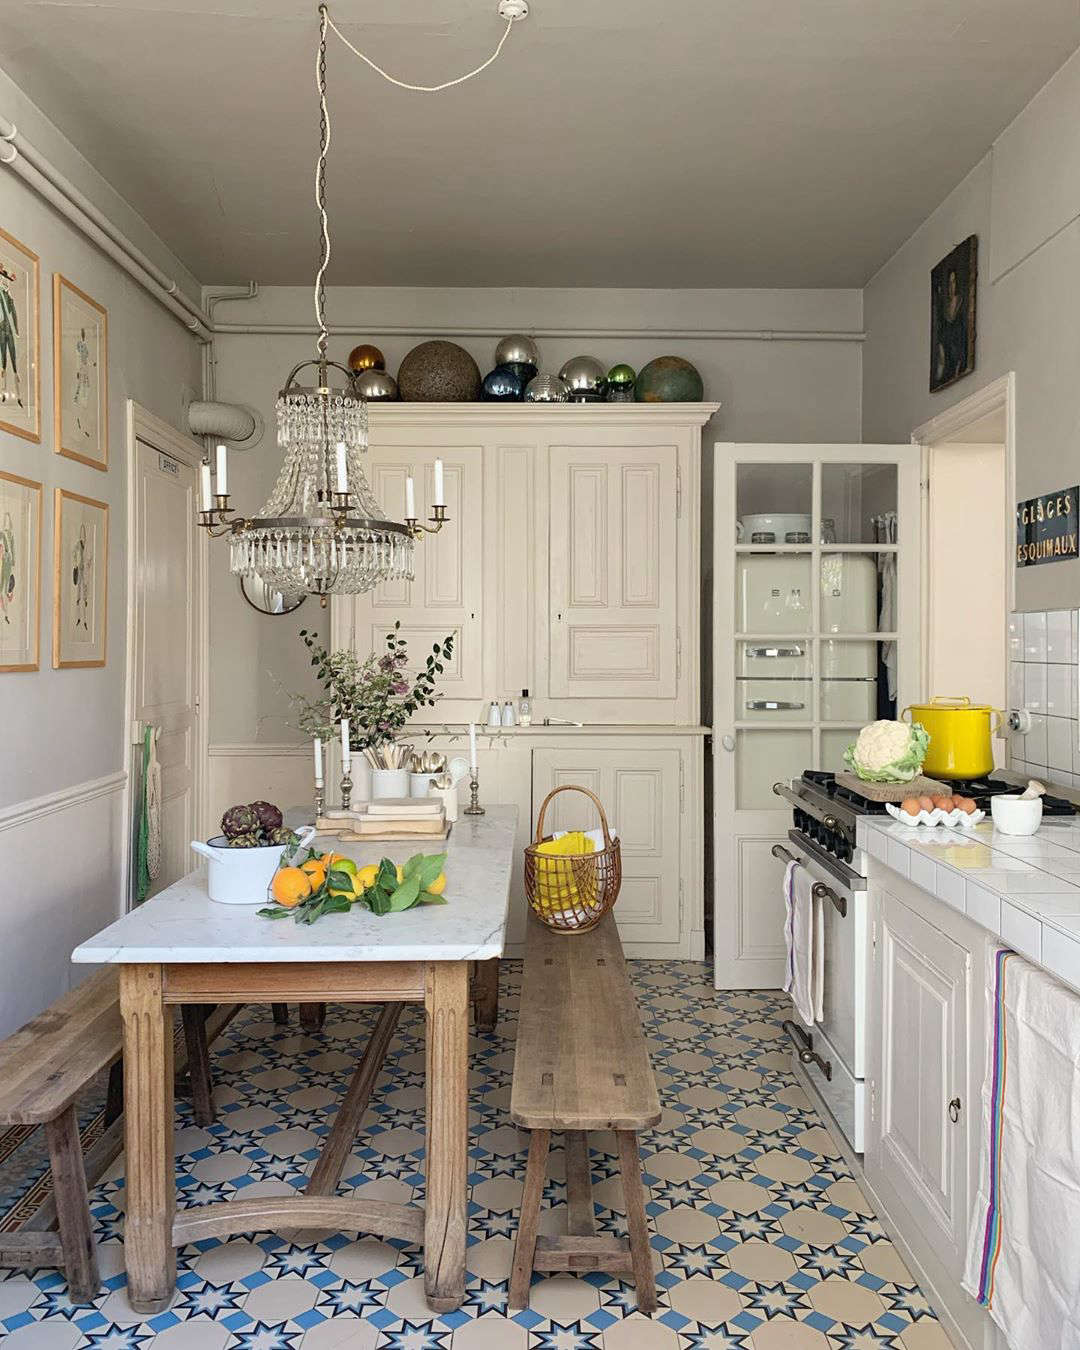 The petite kitchen, with glimpses of color (in a cloth, a yellow pot, a hanging market bag).